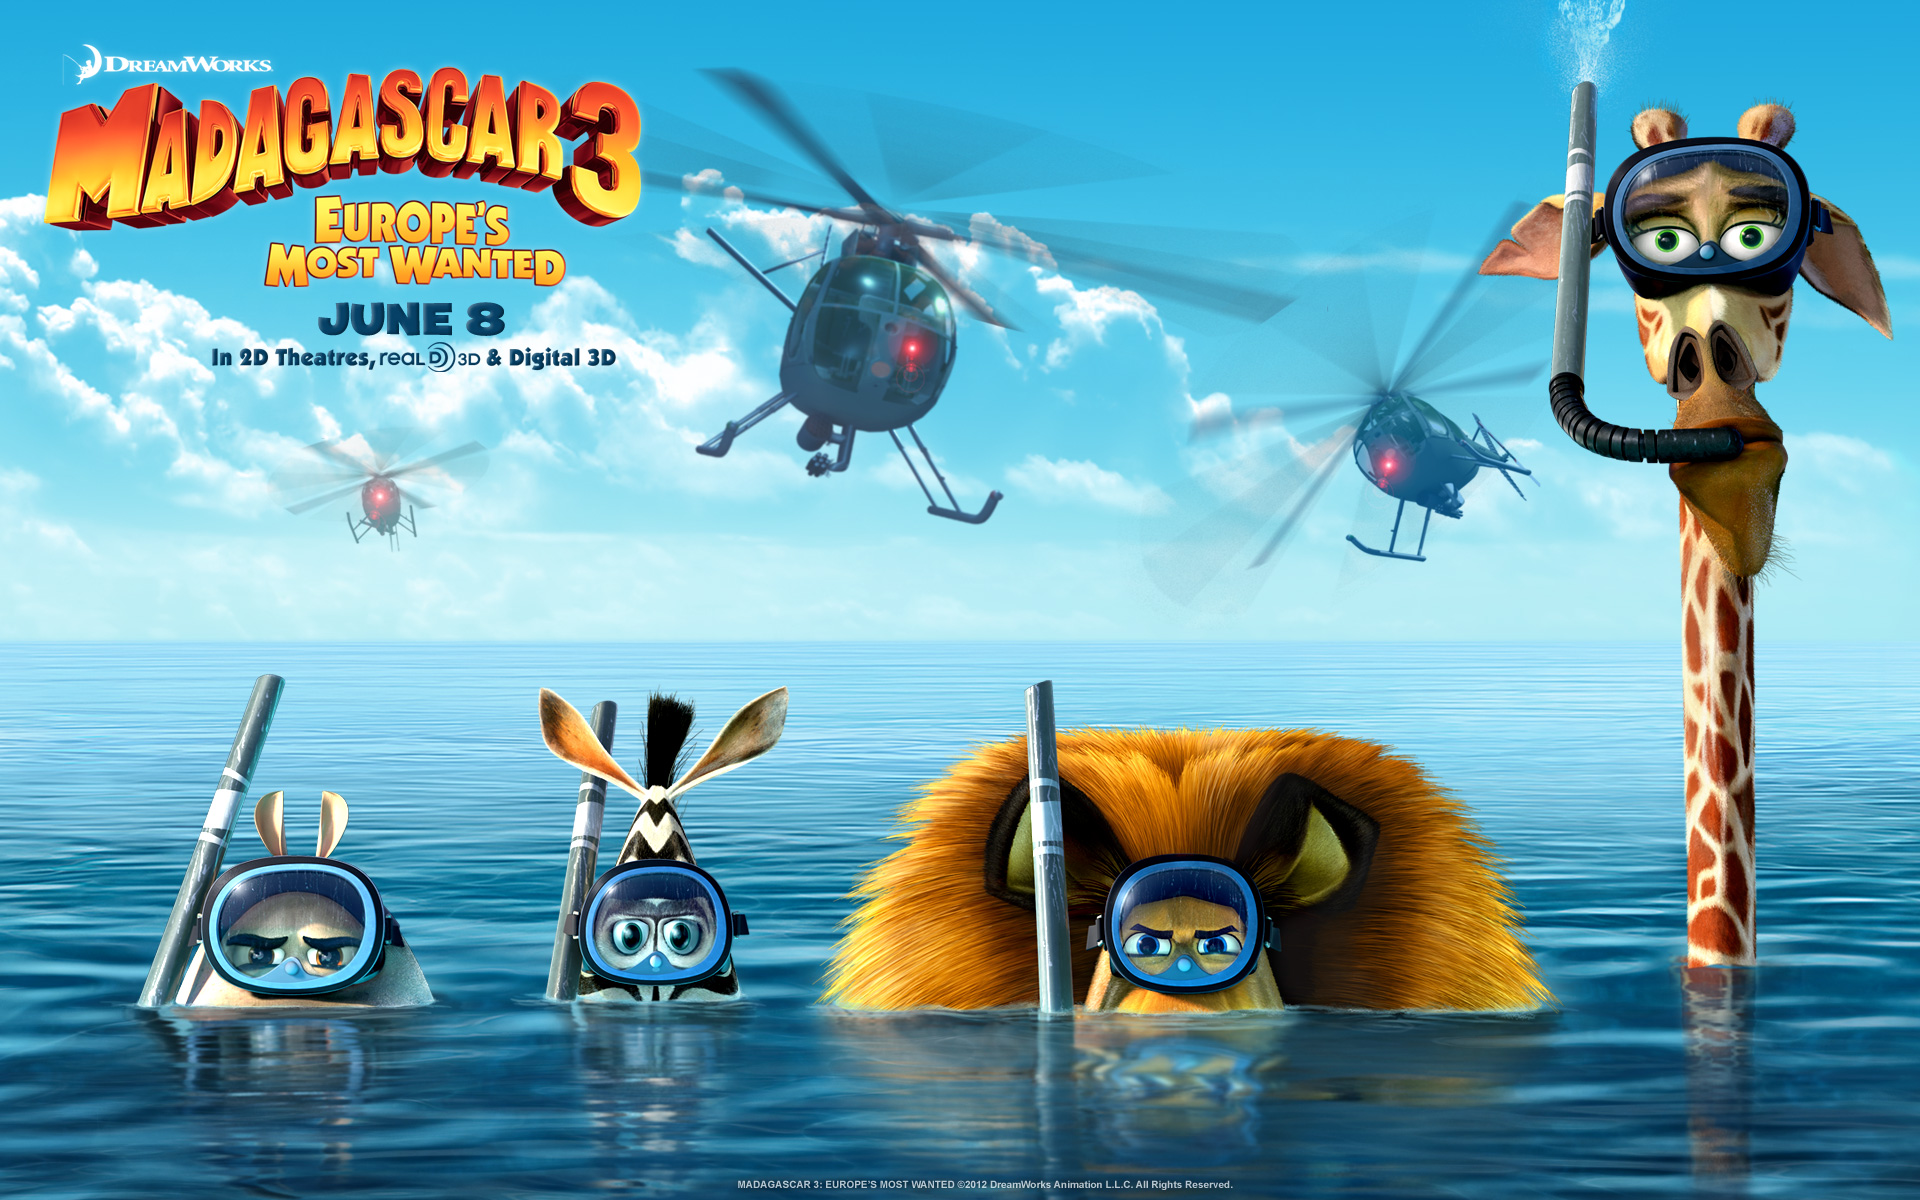 Madagascar 3 2012 Movie